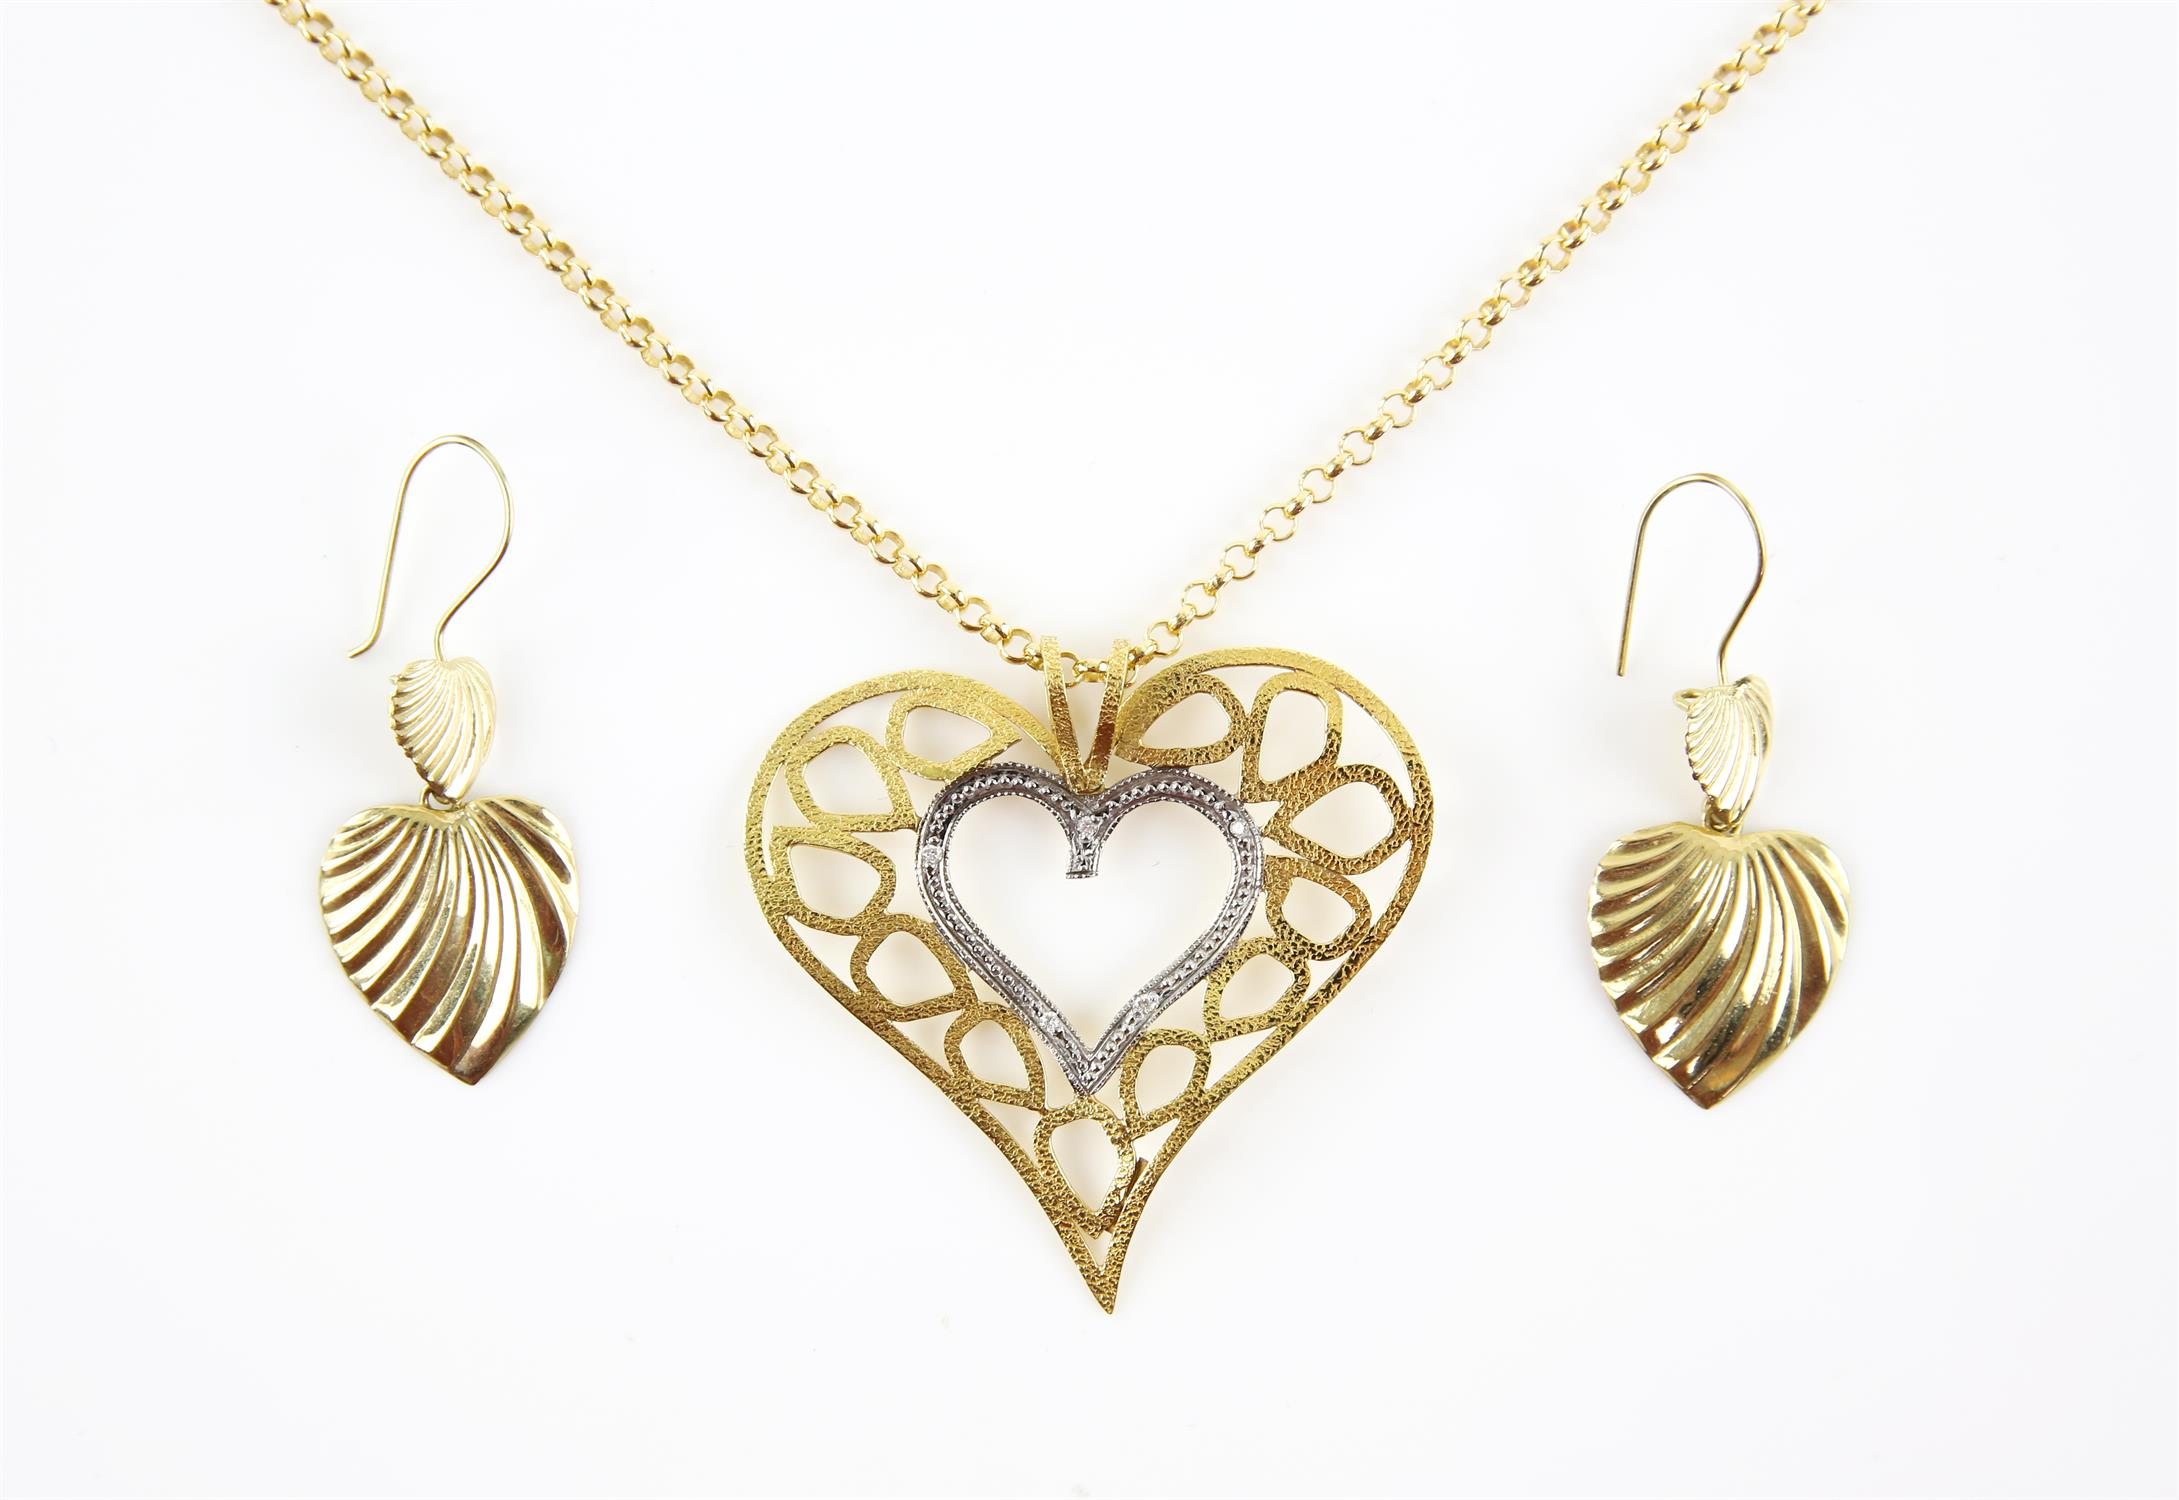 Diamond set heart pendant, hammered gold finish, stamped 18 ct, on a belcher link chain stamped 14